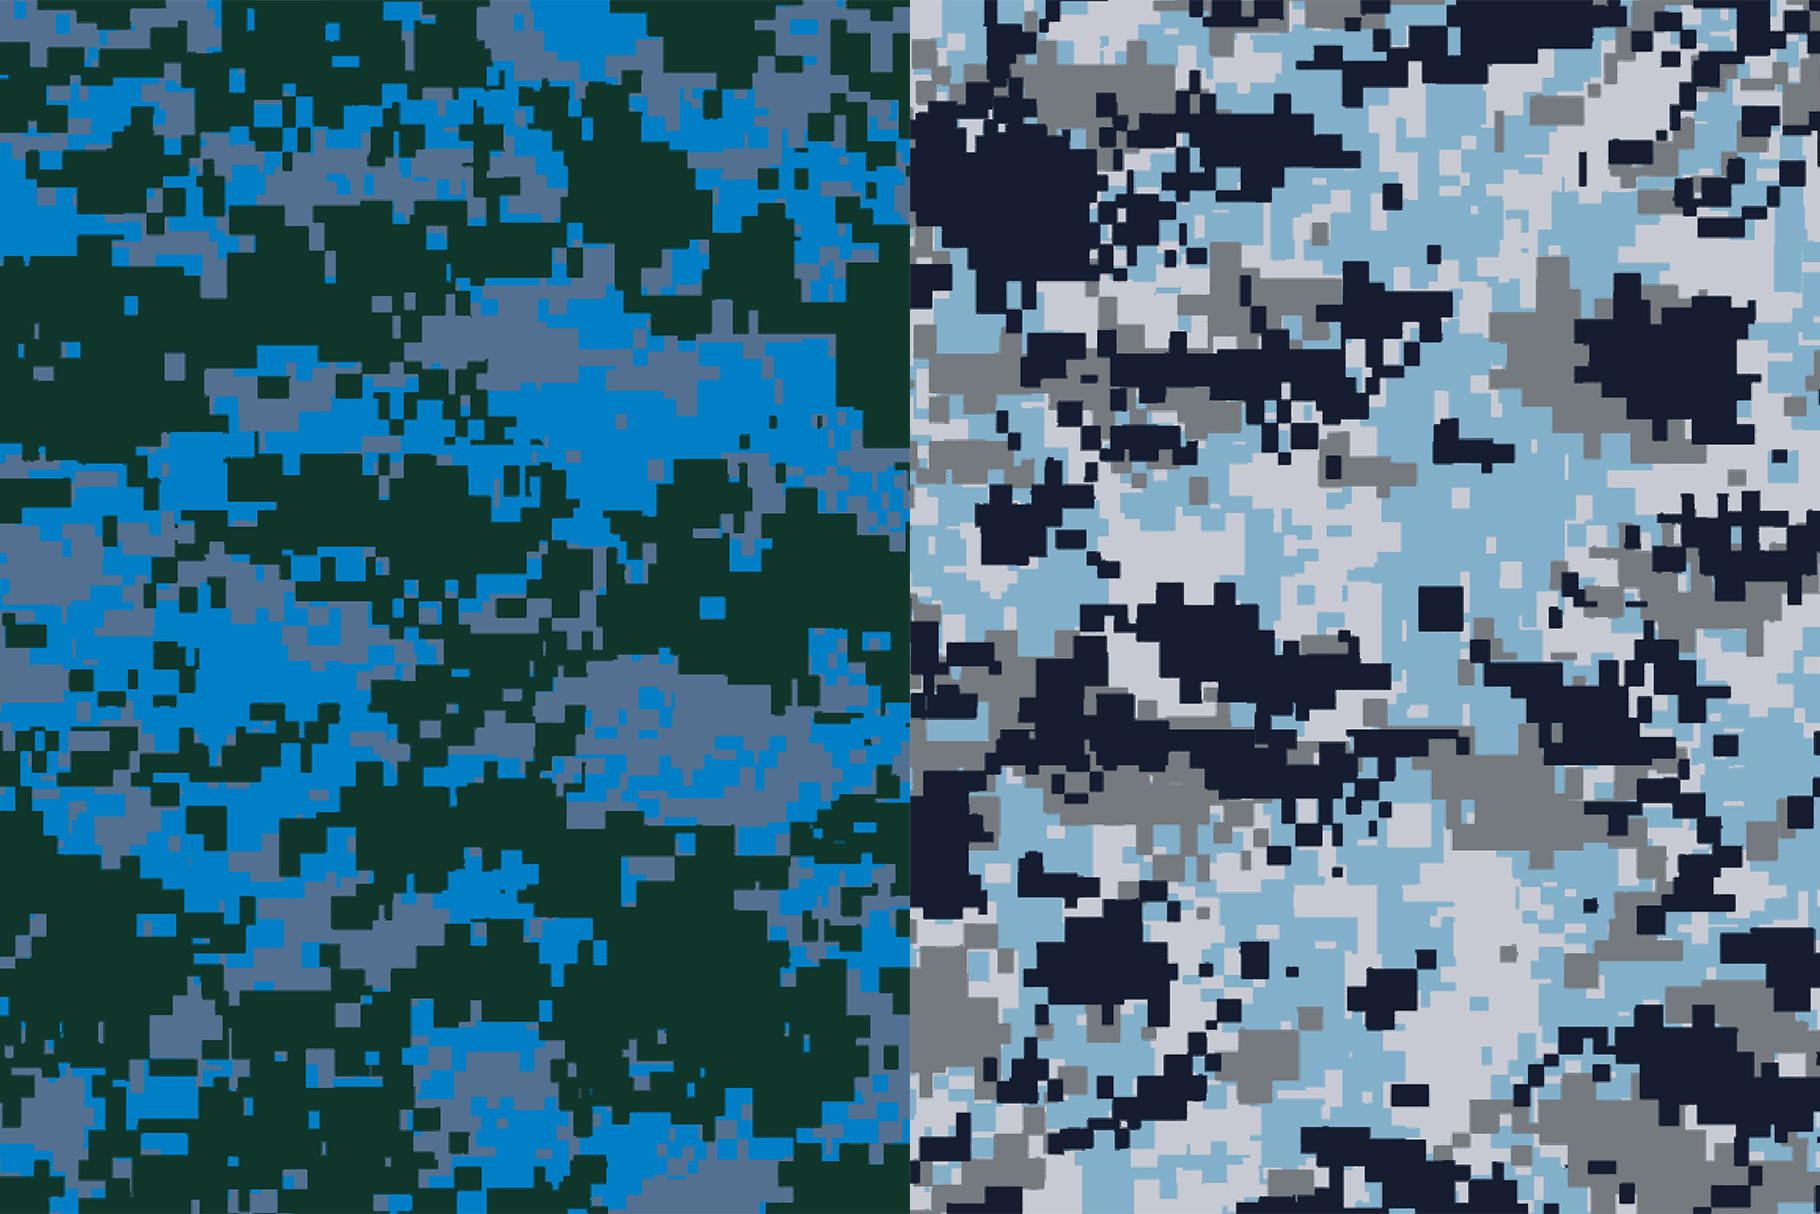 10 Pixel Camouflage Patterns example image 7